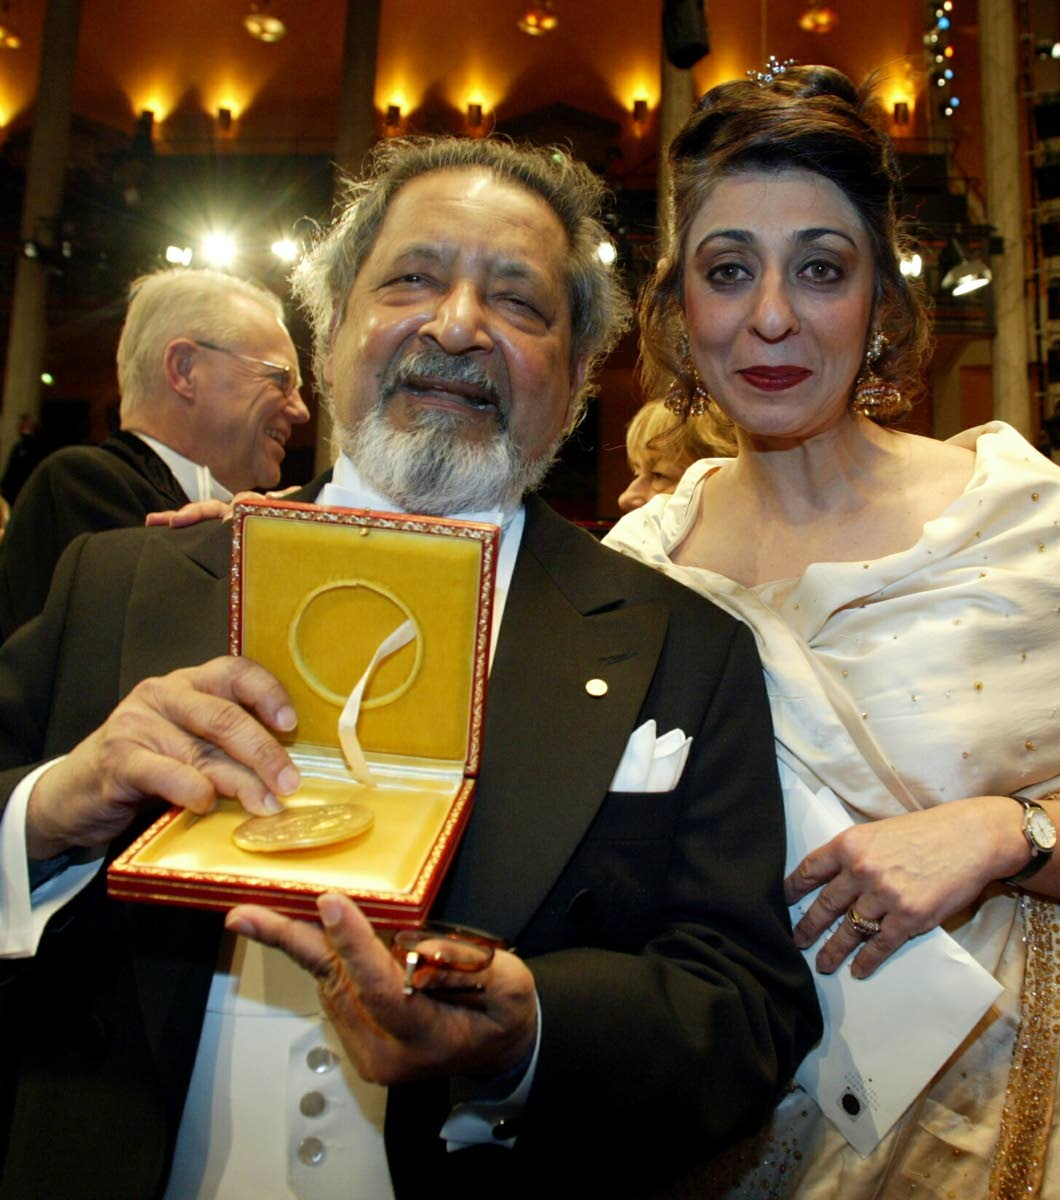 Nobel literature laureate Sir V S Naipaul, with his wife Nadira at his side, displays his medal after receiving it from the Swedish king at the Concert Hall in Stockholm, December 10, 2001.